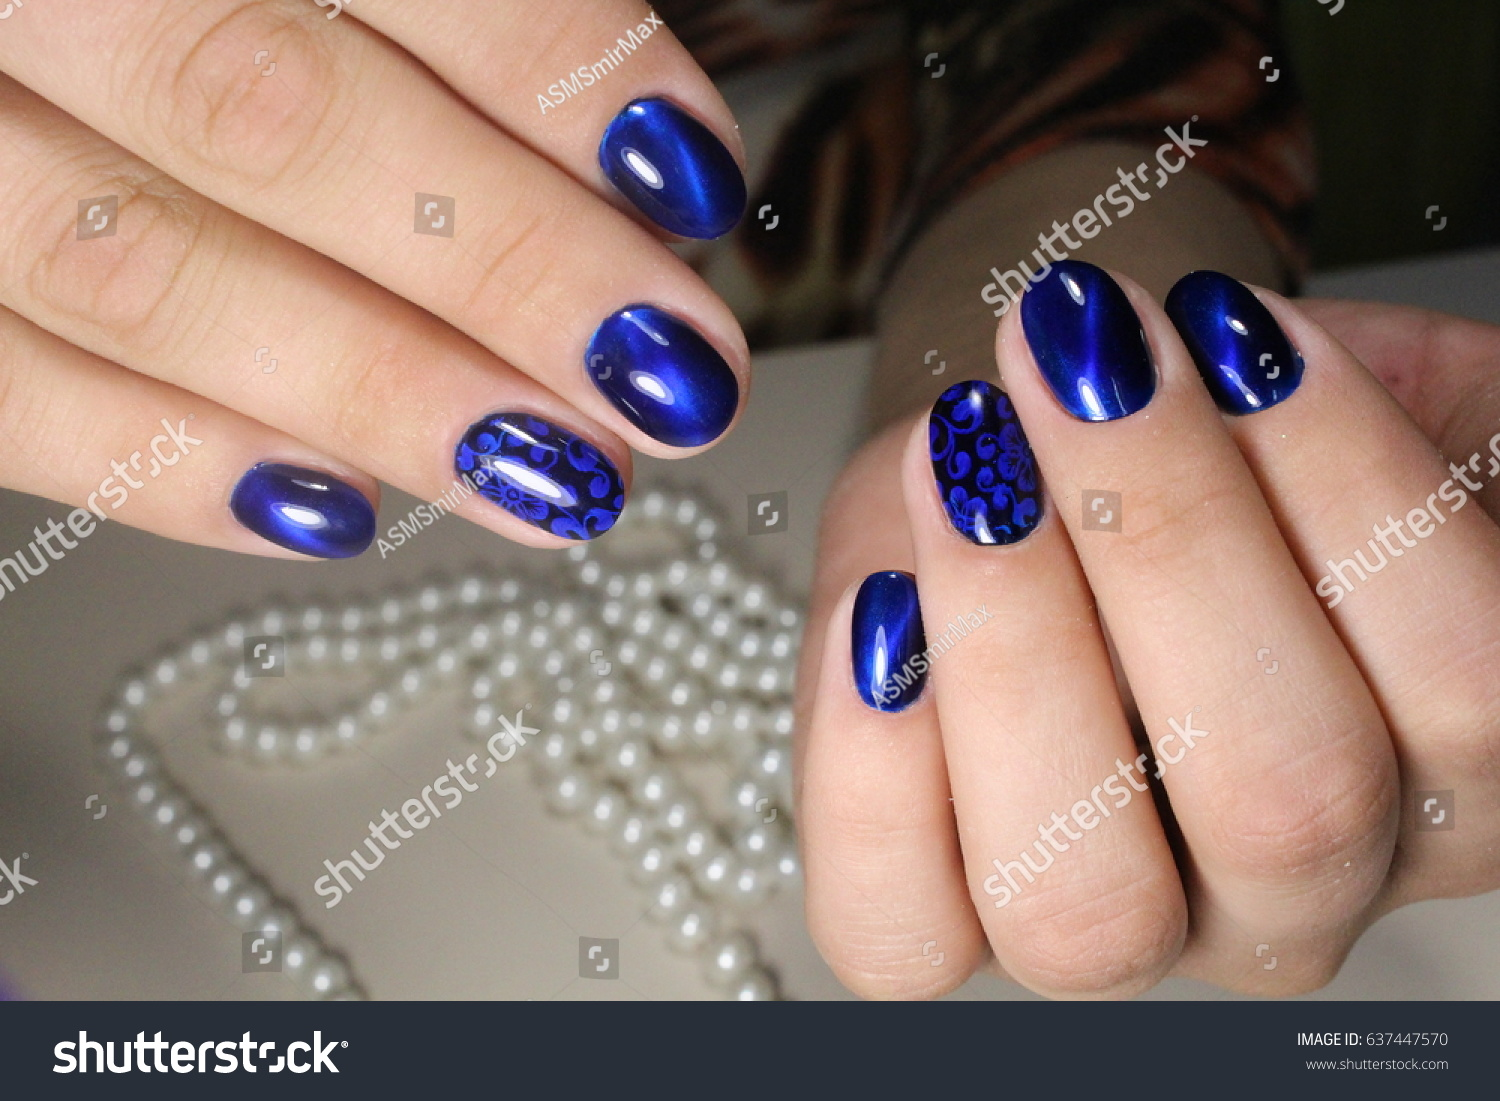 Manicure Design Blue Nails Stock Photo (Royalty Free) 637447570 ...